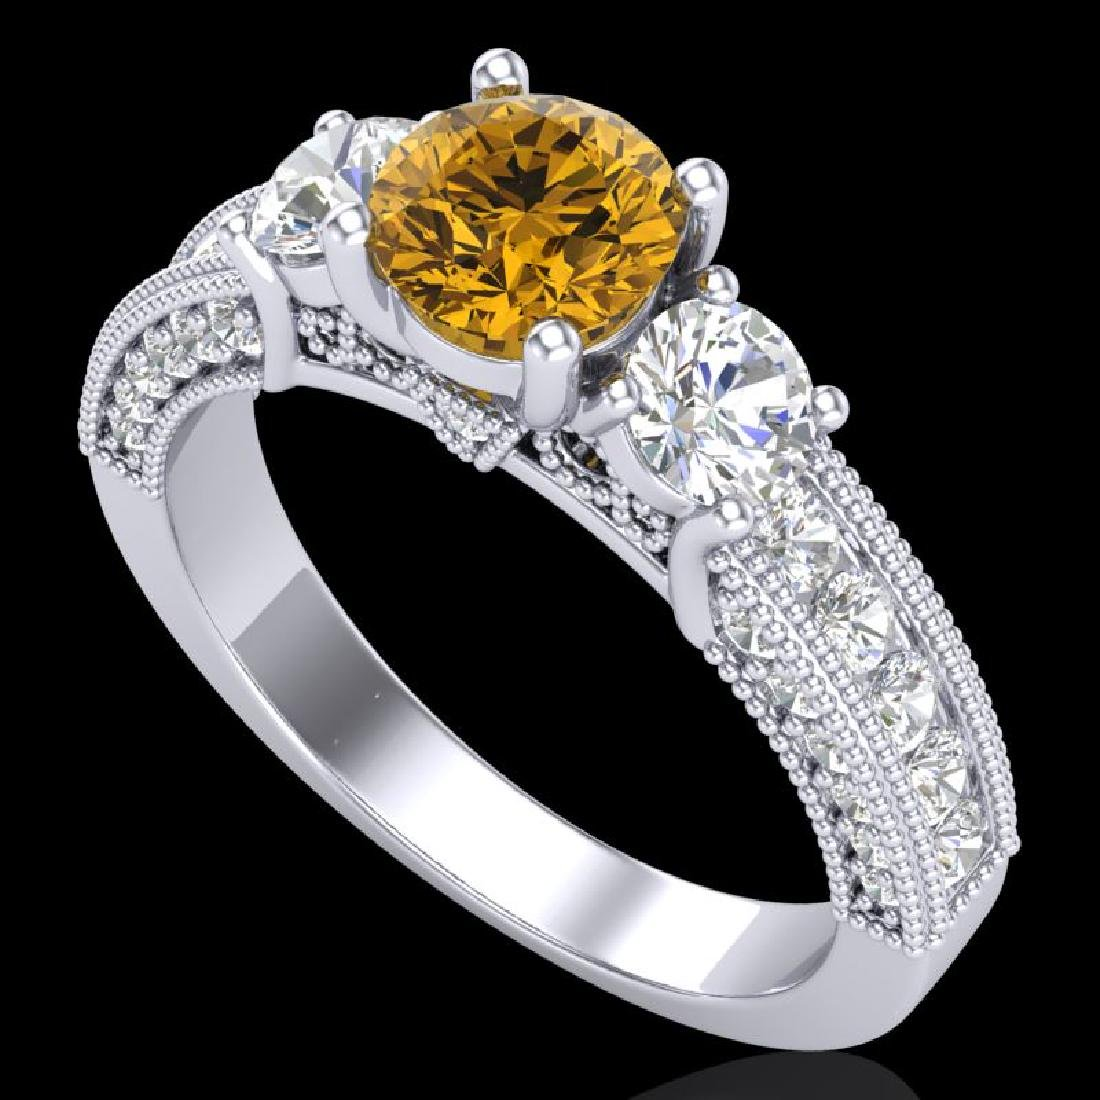 2.07 CTW Intense Fancy Yellow Diamond Art Deco 3 Stone